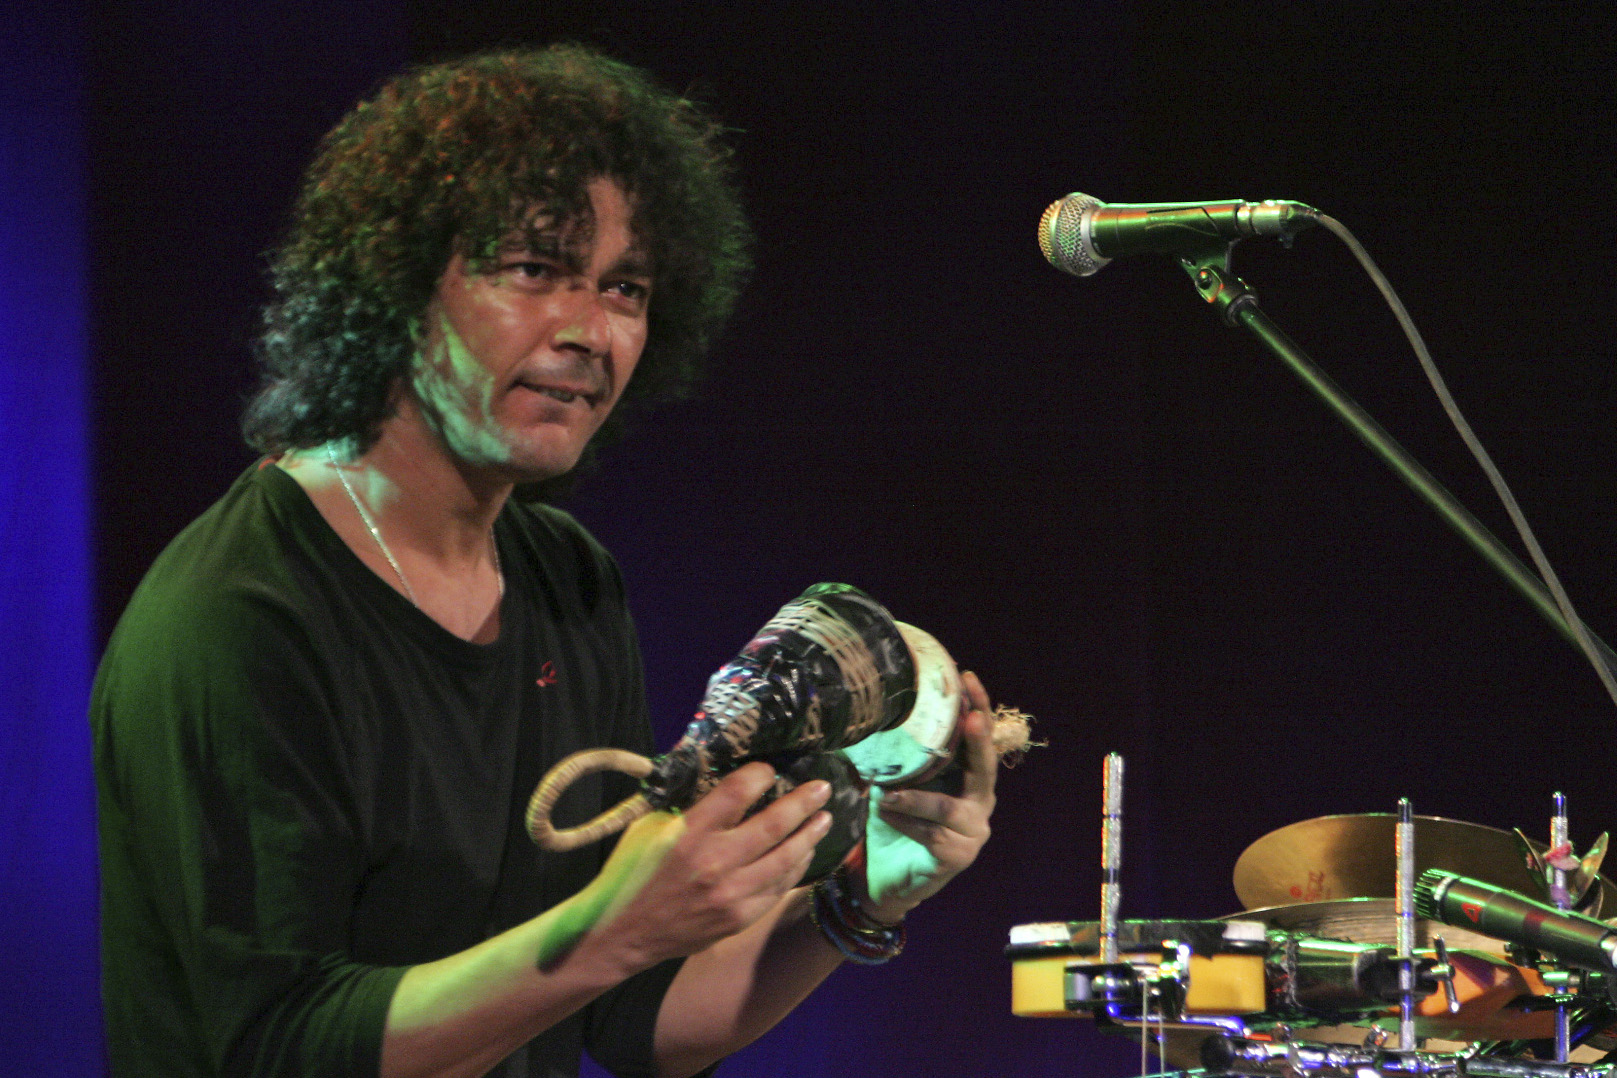 Photo of NÎMES : FWAD DARWICH & THE DIALECTS + AZIZ AZ SAHMAOUI, CE SAMEDI 24 MARS 2012 AU JAZZPANAZZ